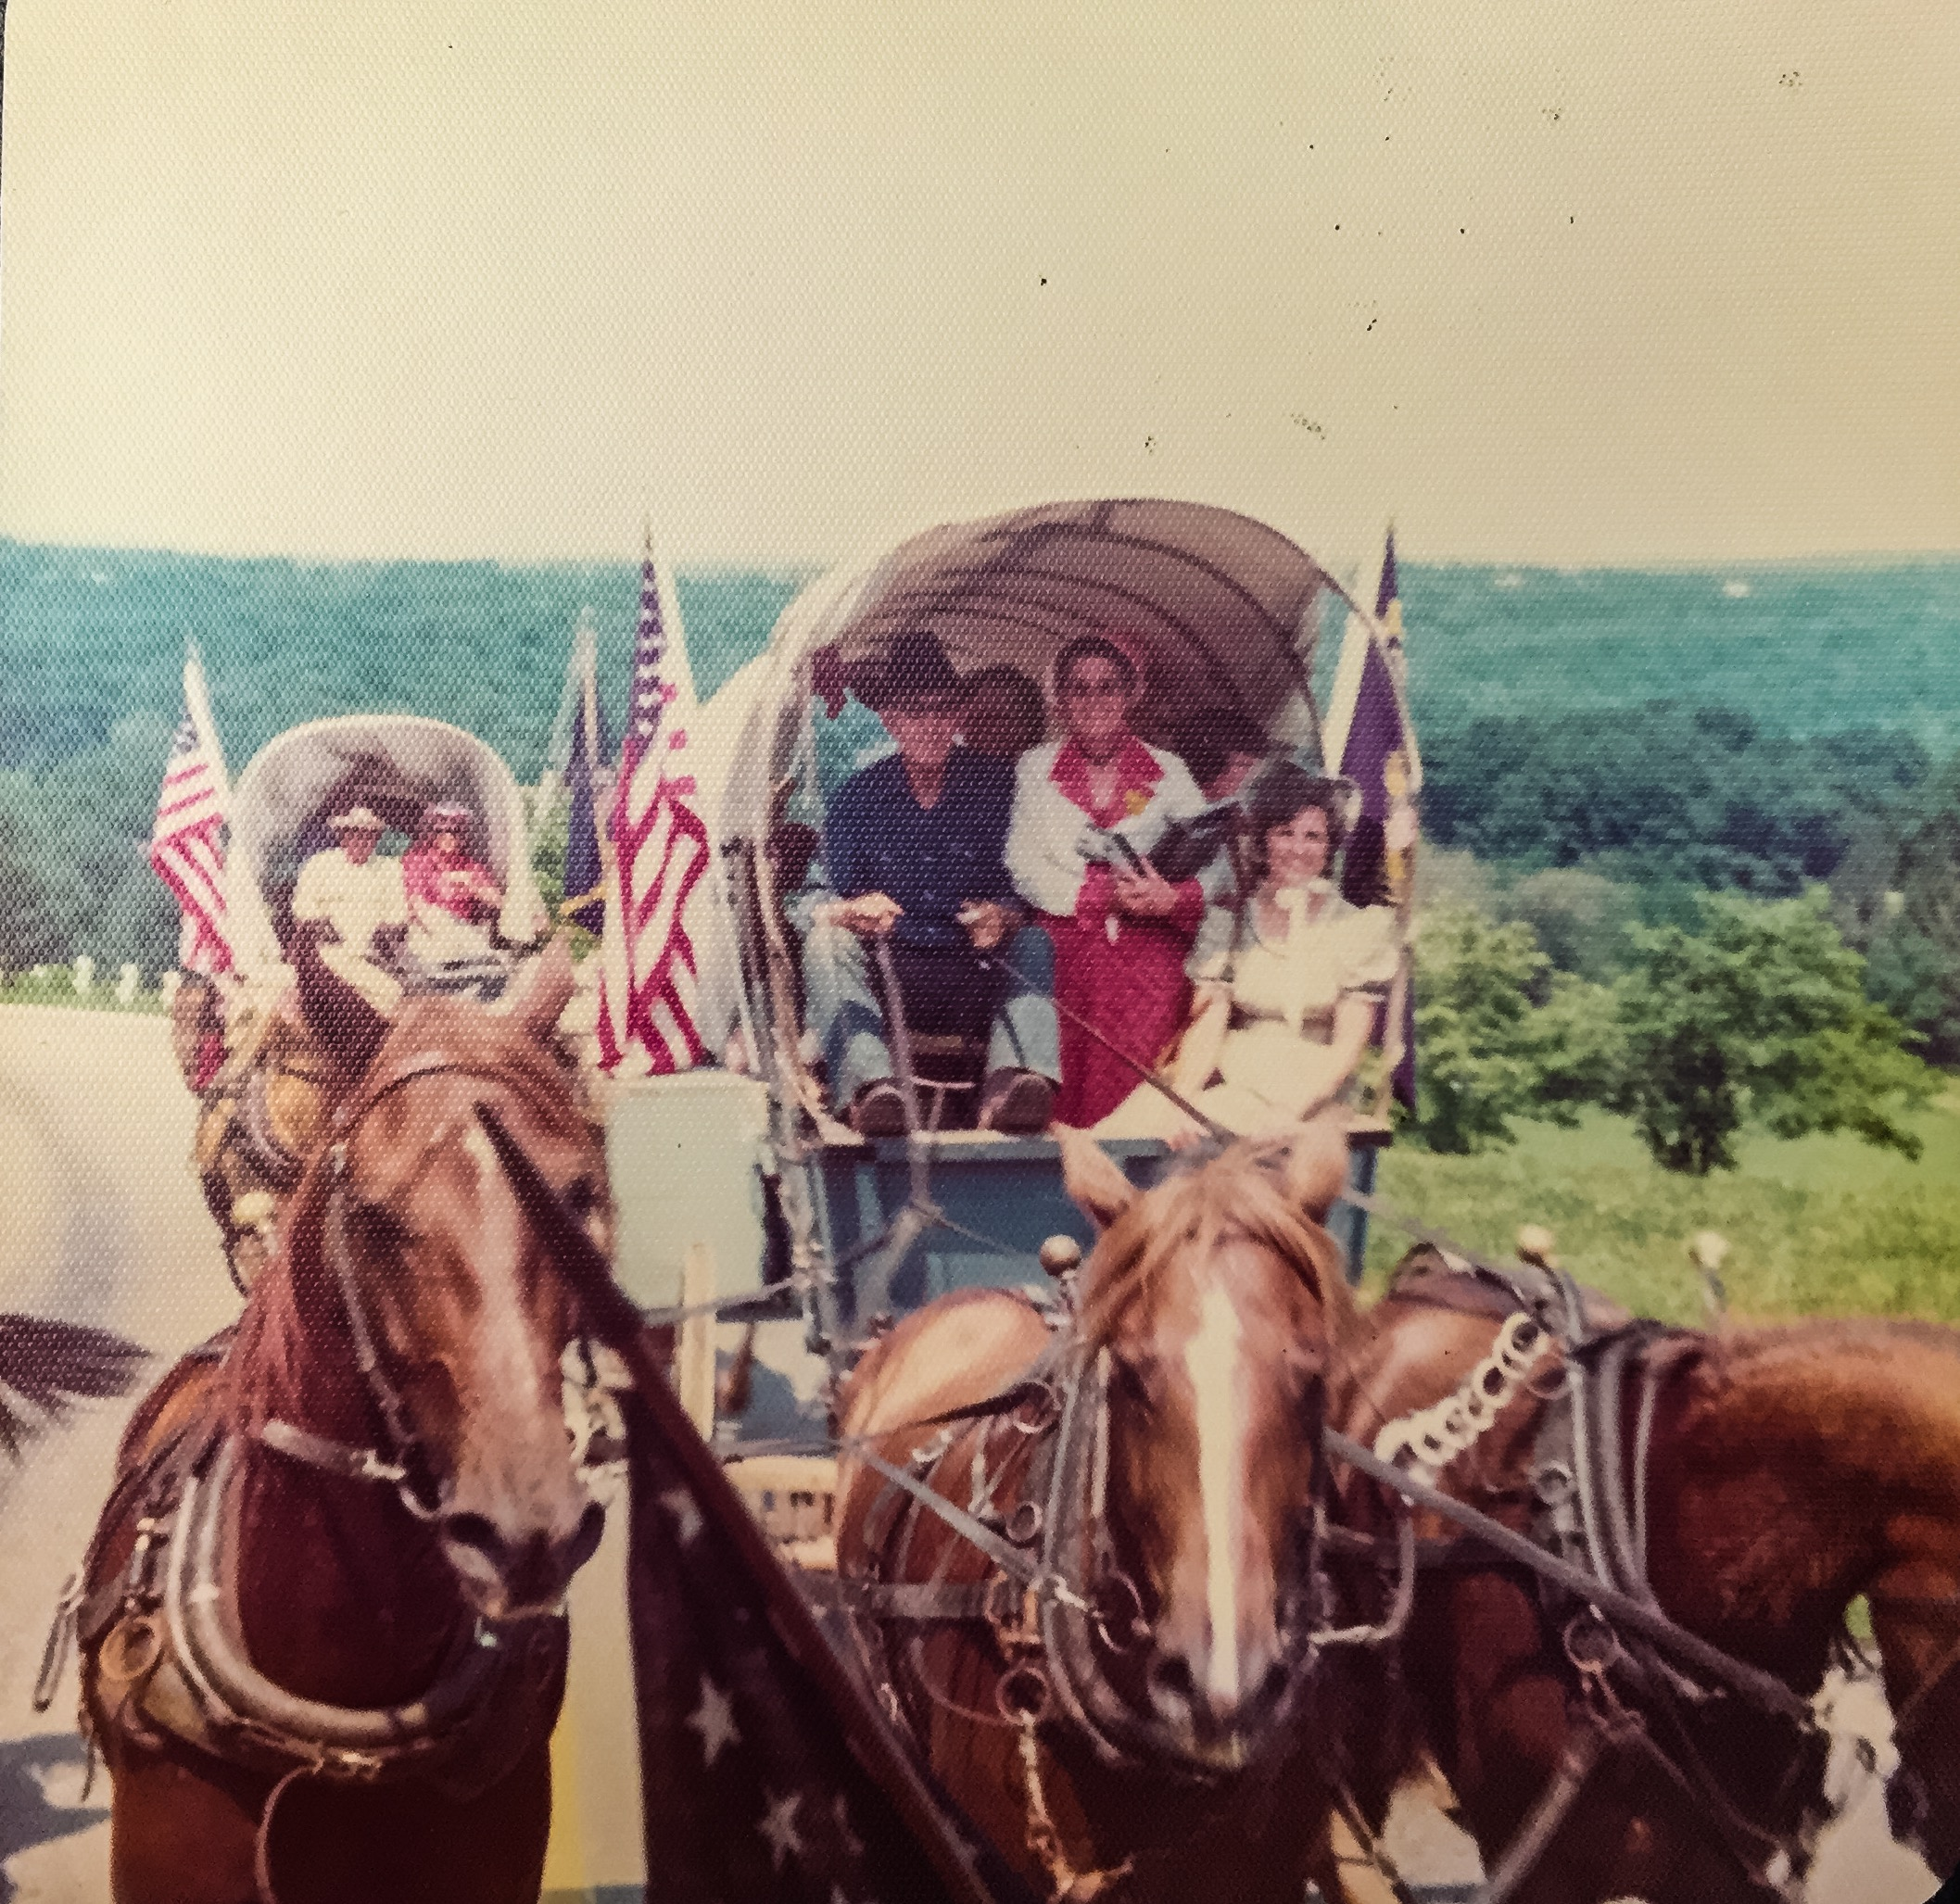 Celebrating ~and Making~ History in a Bicentennial Wagon | July 3, 1976